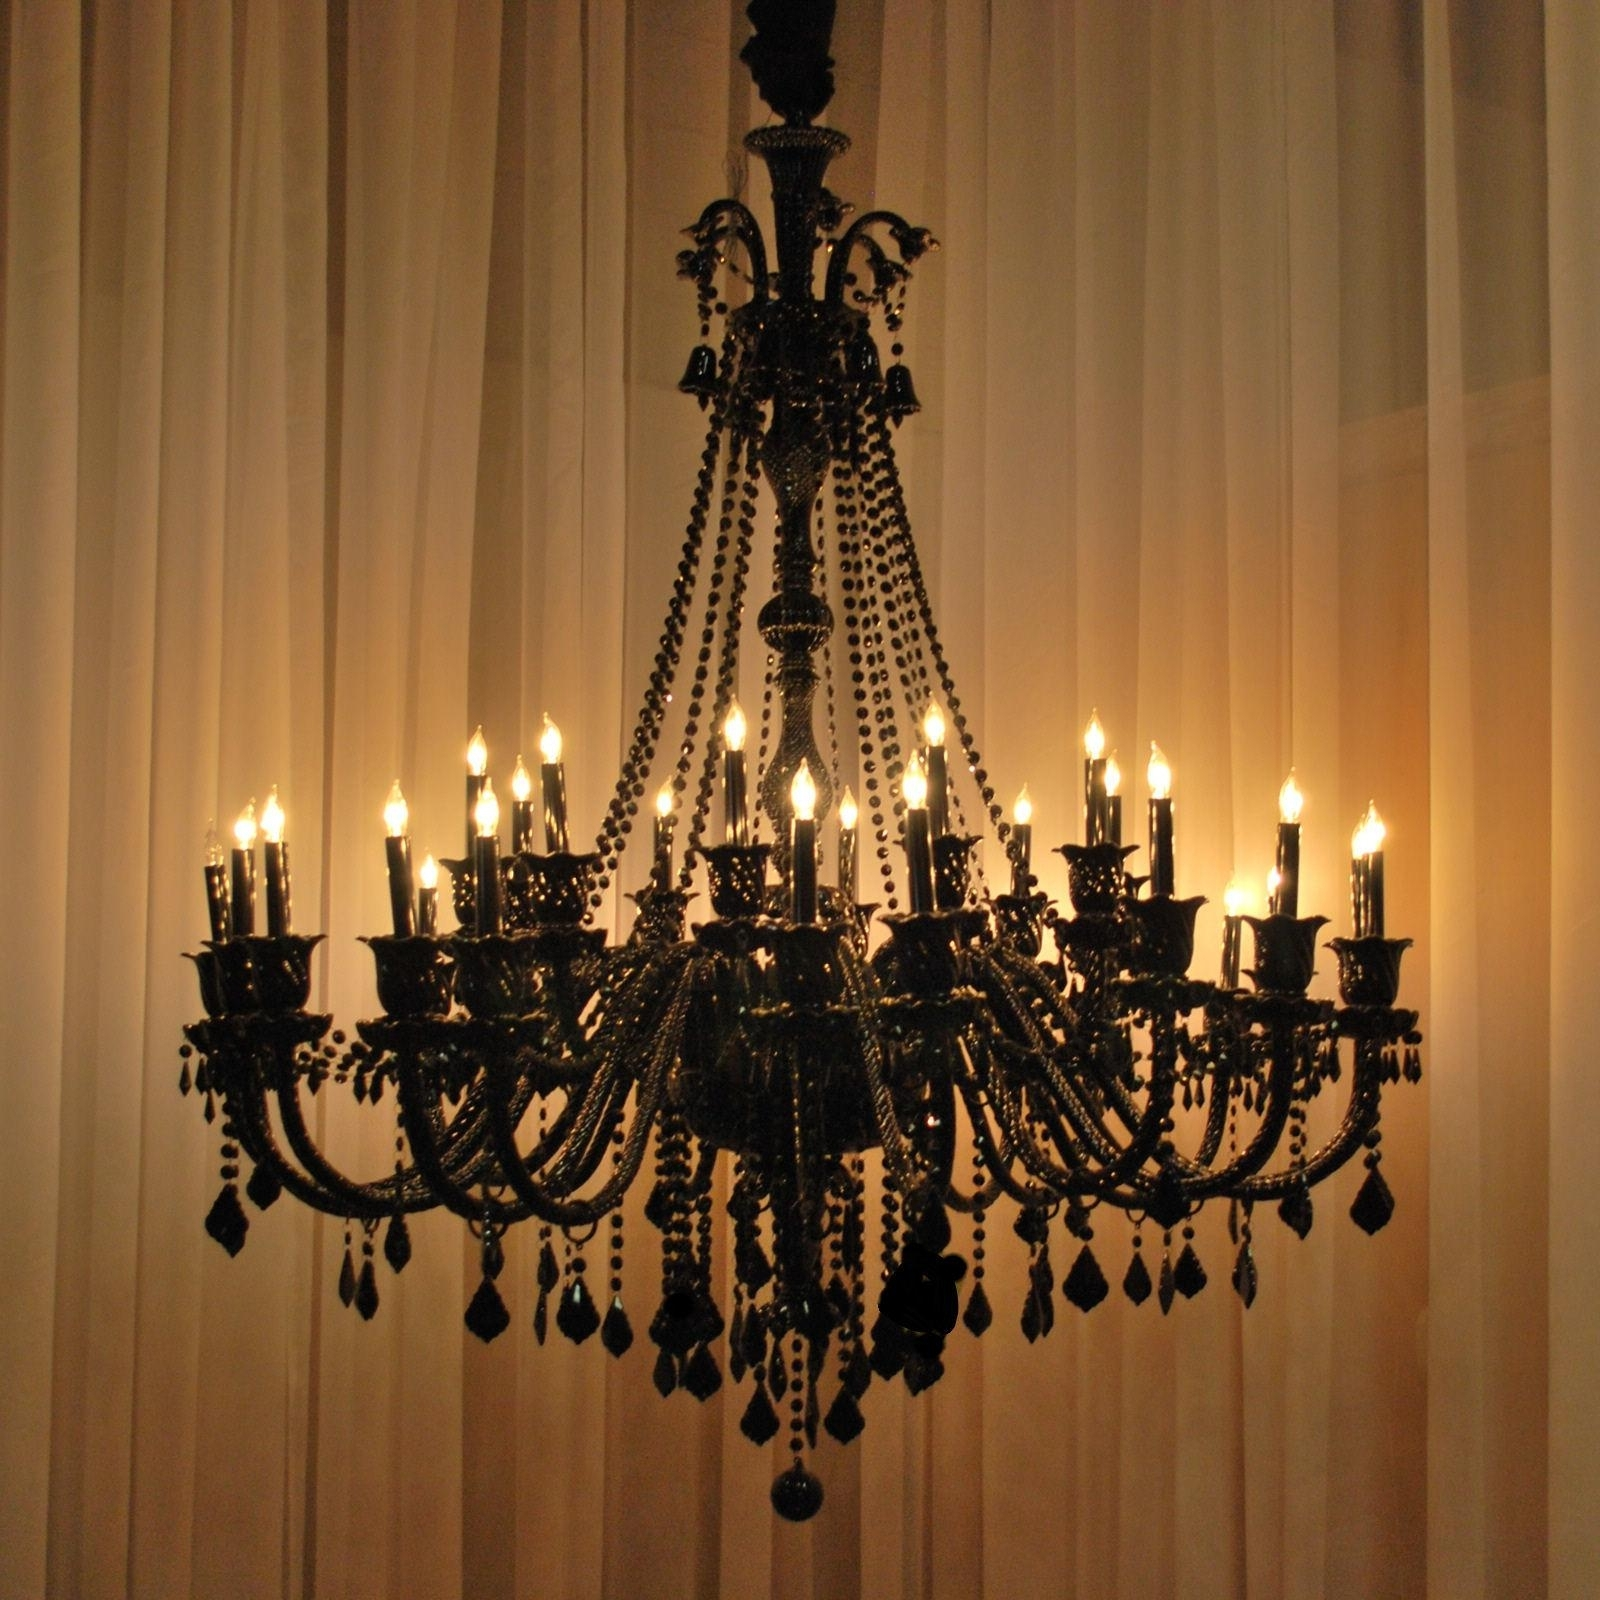 Large Chandeliers With Regard To Newest Chandelier, Chandeliers, Crystal Chandelier, Crystal Chandeliers (View 7 of 15)